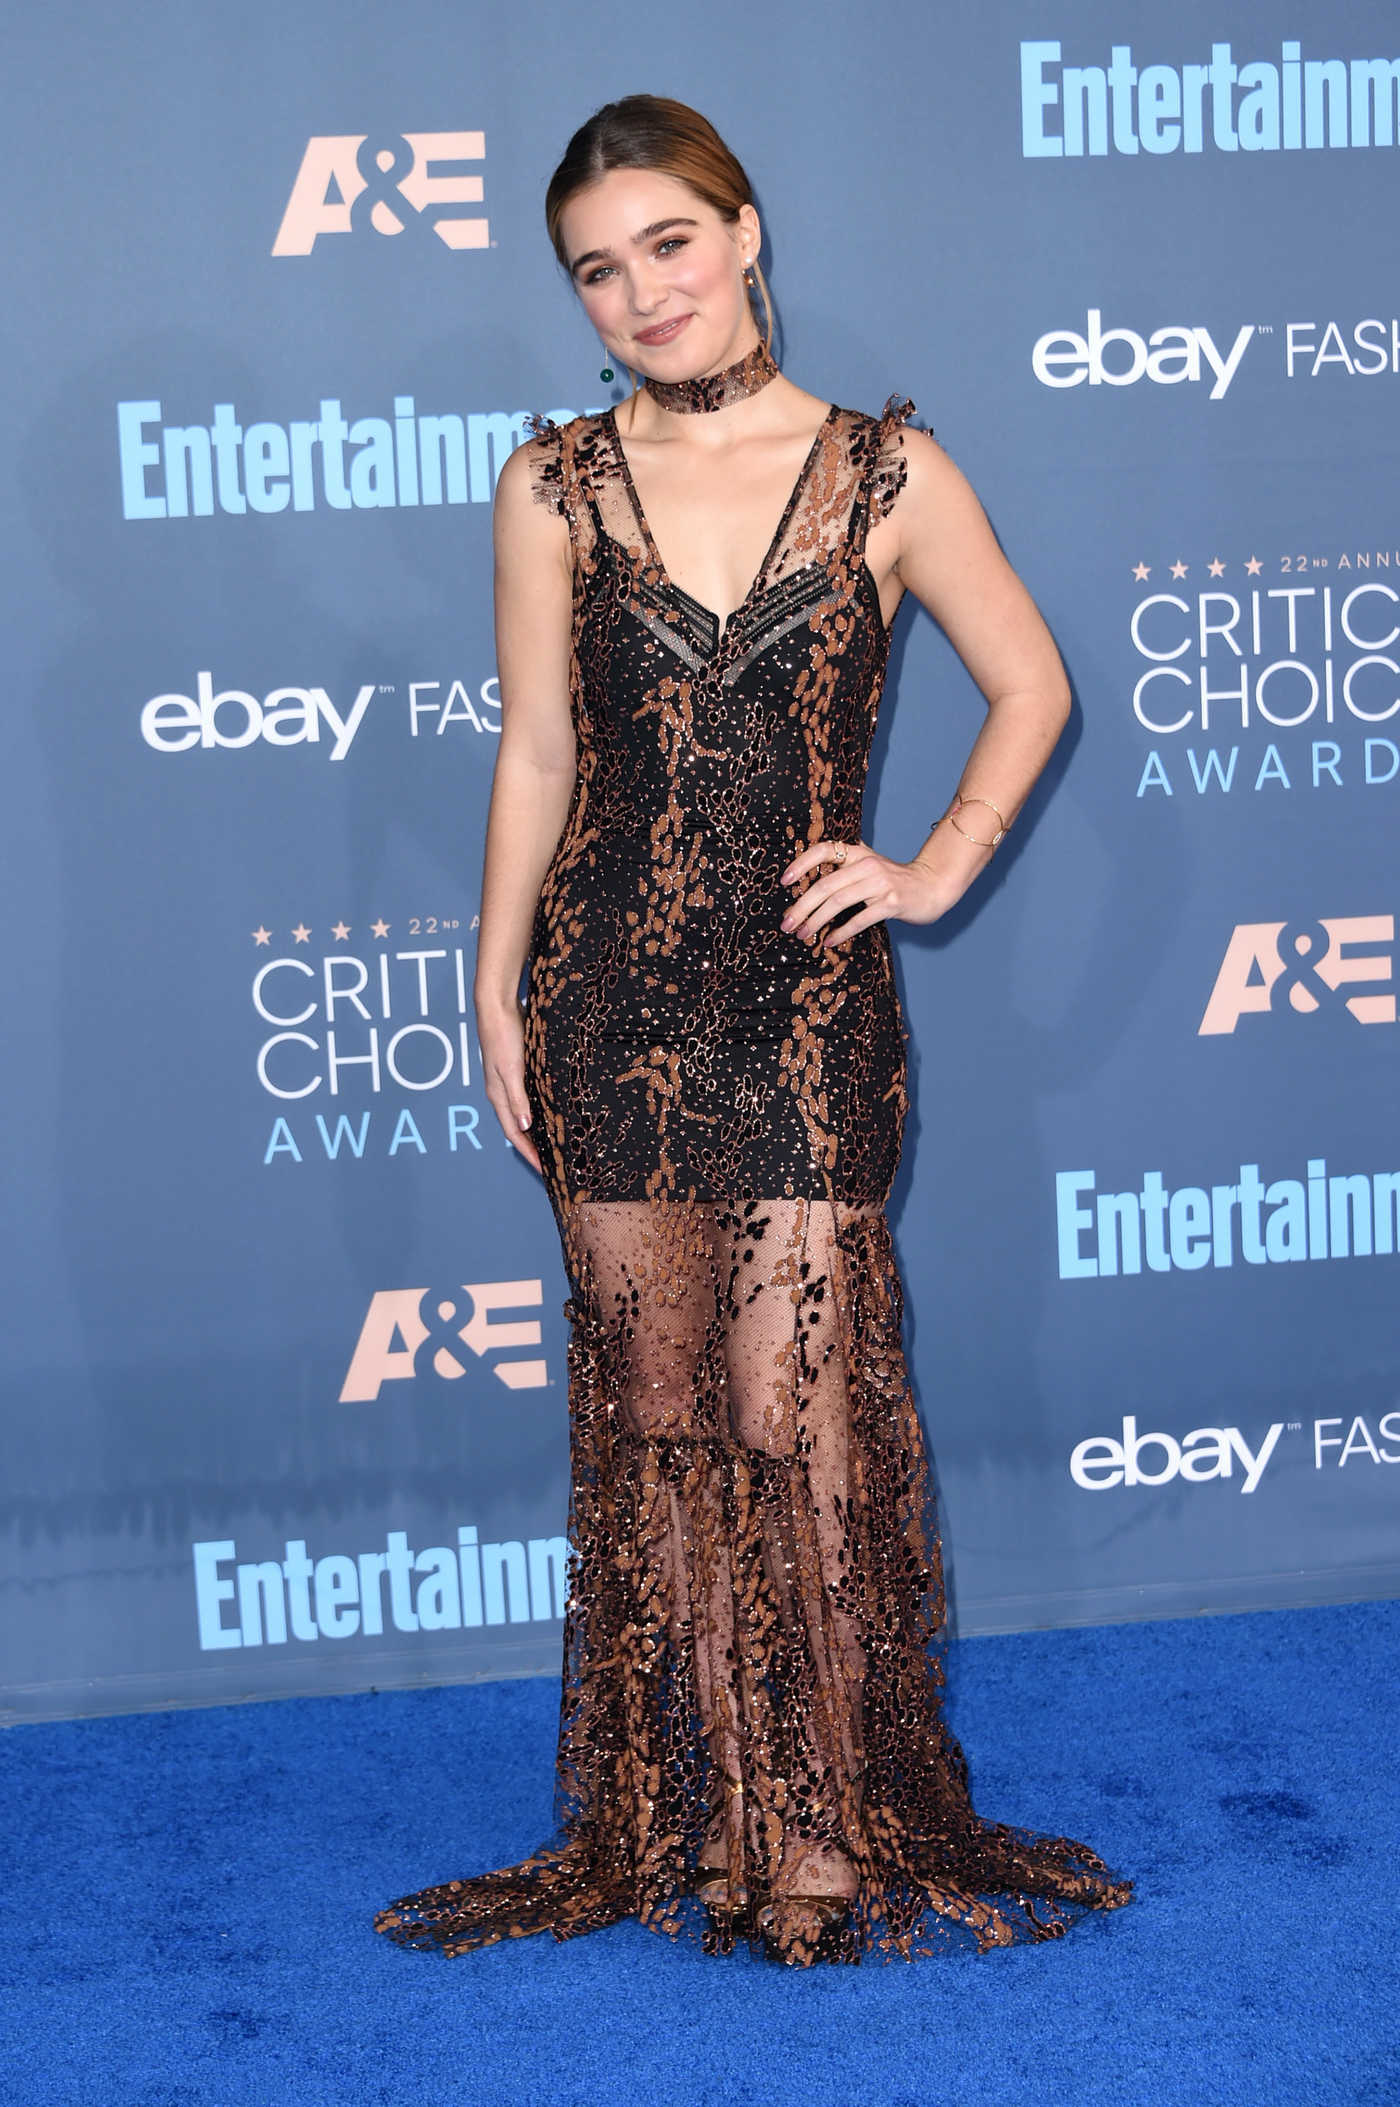 Haley Lu Richardson at the 22nd Annual Critics' Choice Awards in Santa Monica 12/11/2016